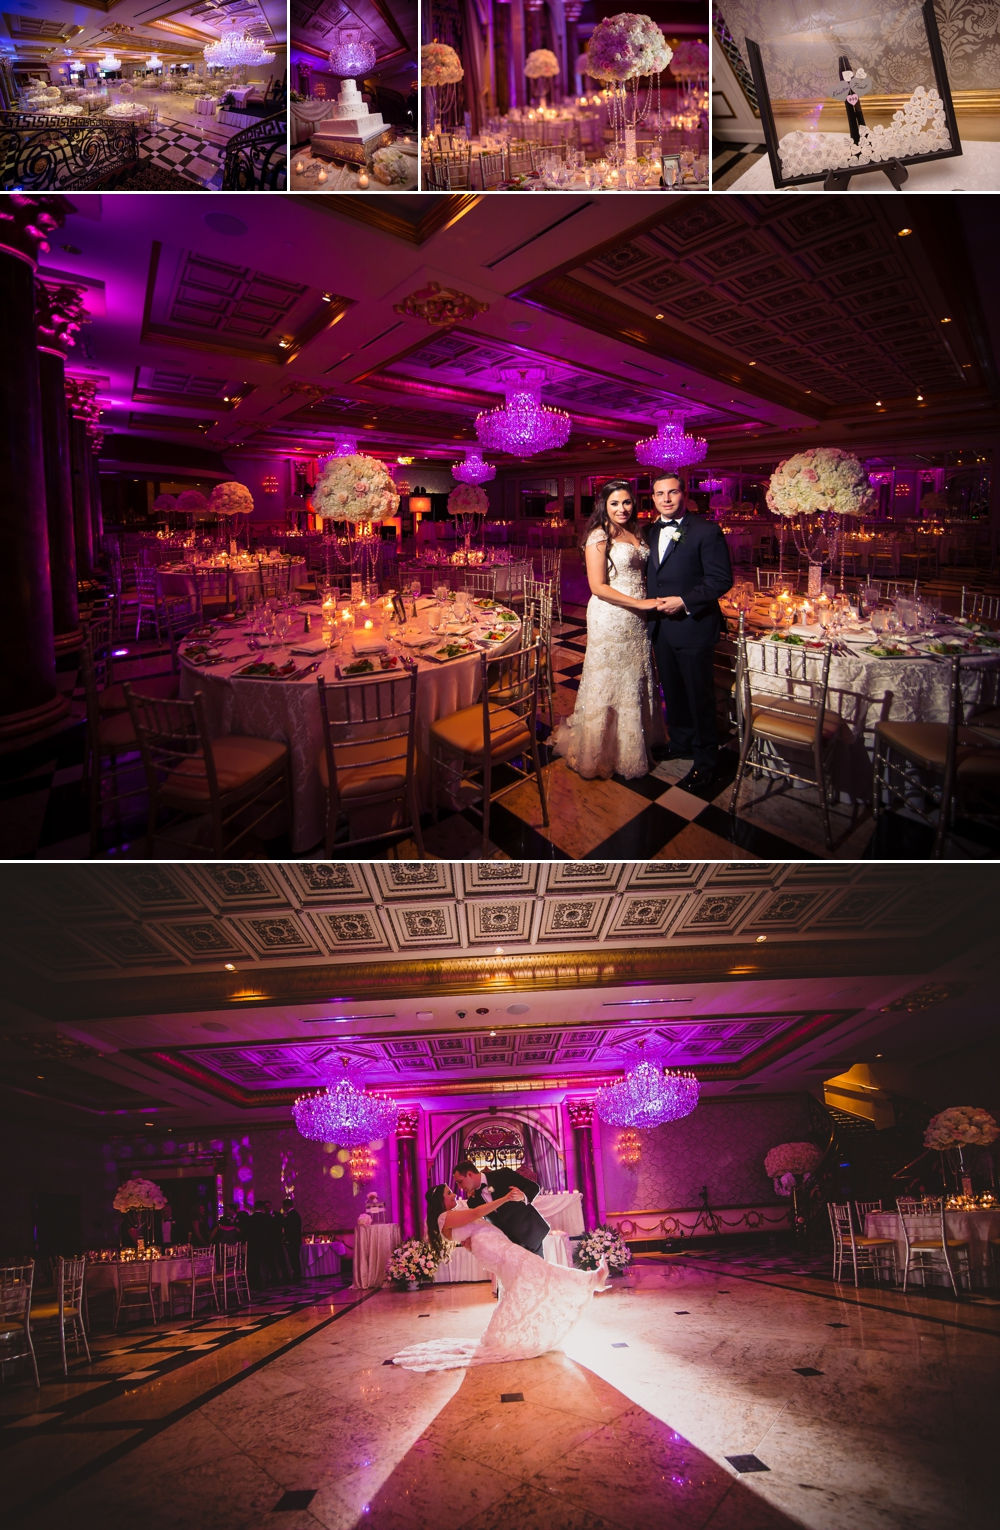 Kristen and Paul The Venetian Wedding 6.jpg